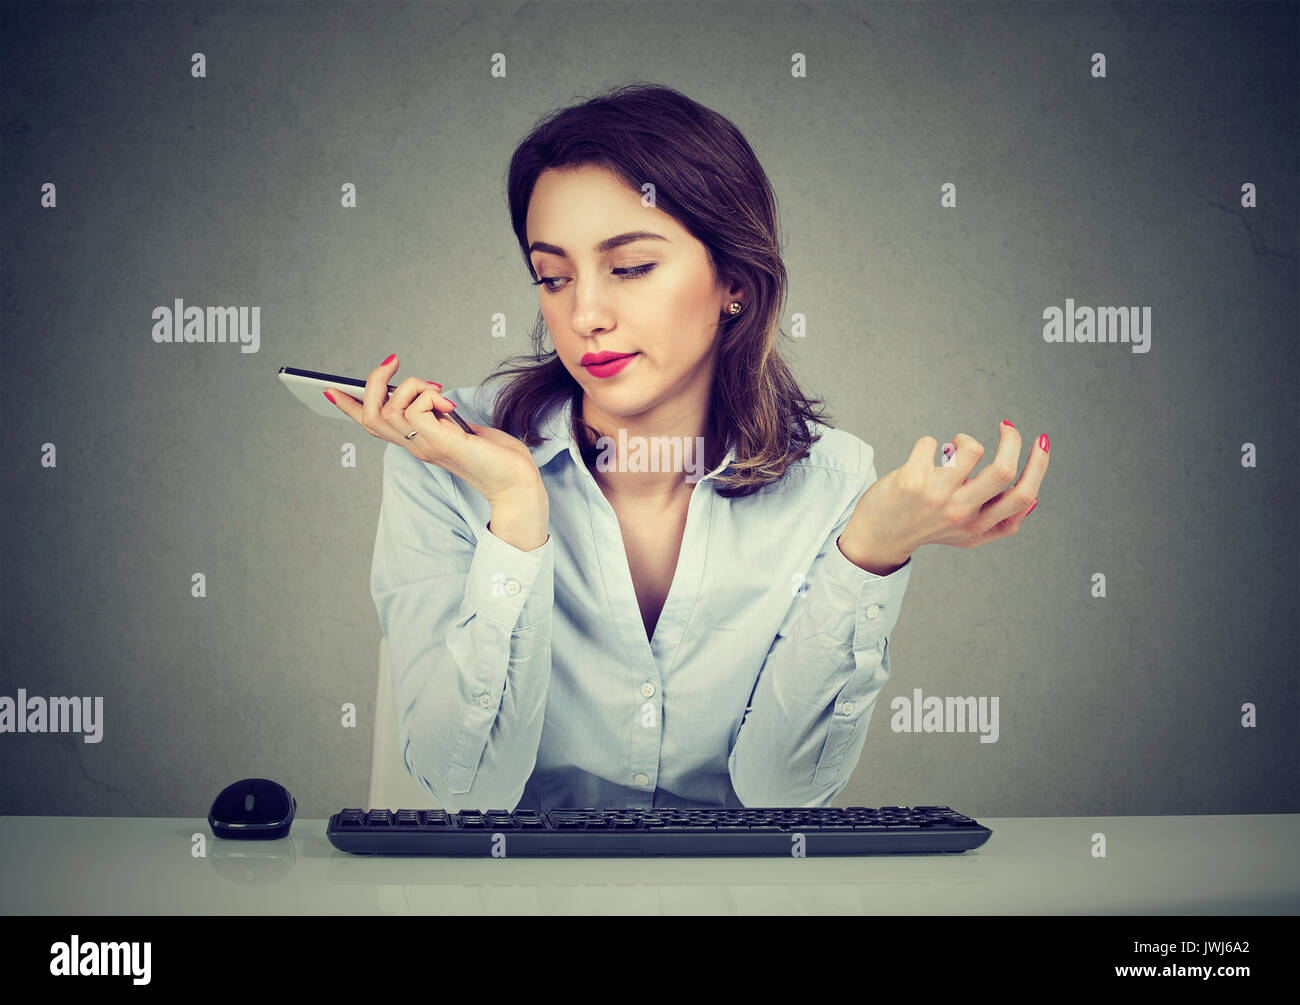 Annoyed young woman with cellphone. Horrible conversations concept. Human emotion face expression reaction - Stock Image